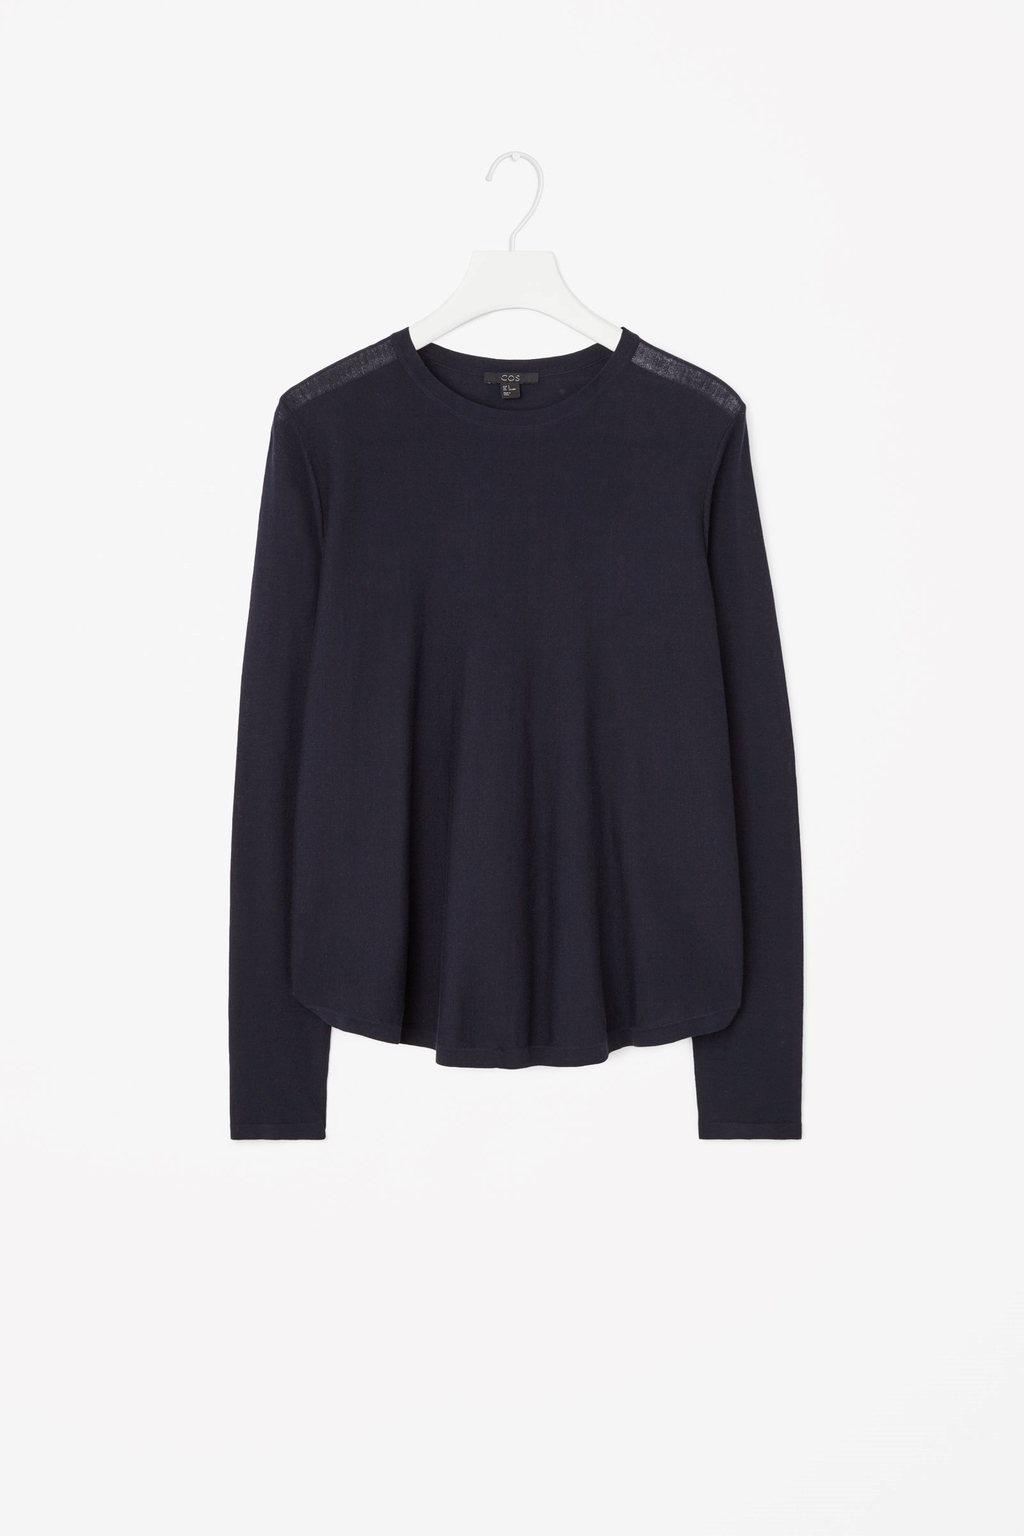 Pleated Back Jumper - neckline: round neck; pattern: plain; style: standard; predominant colour: navy; occasions: casual, creative work; length: standard; fit: standard fit; sleeve length: long sleeve; sleeve style: standard; texture group: knits/crochet; pattern type: knitted - fine stitch; season: s/s 2015; wardrobe: basic